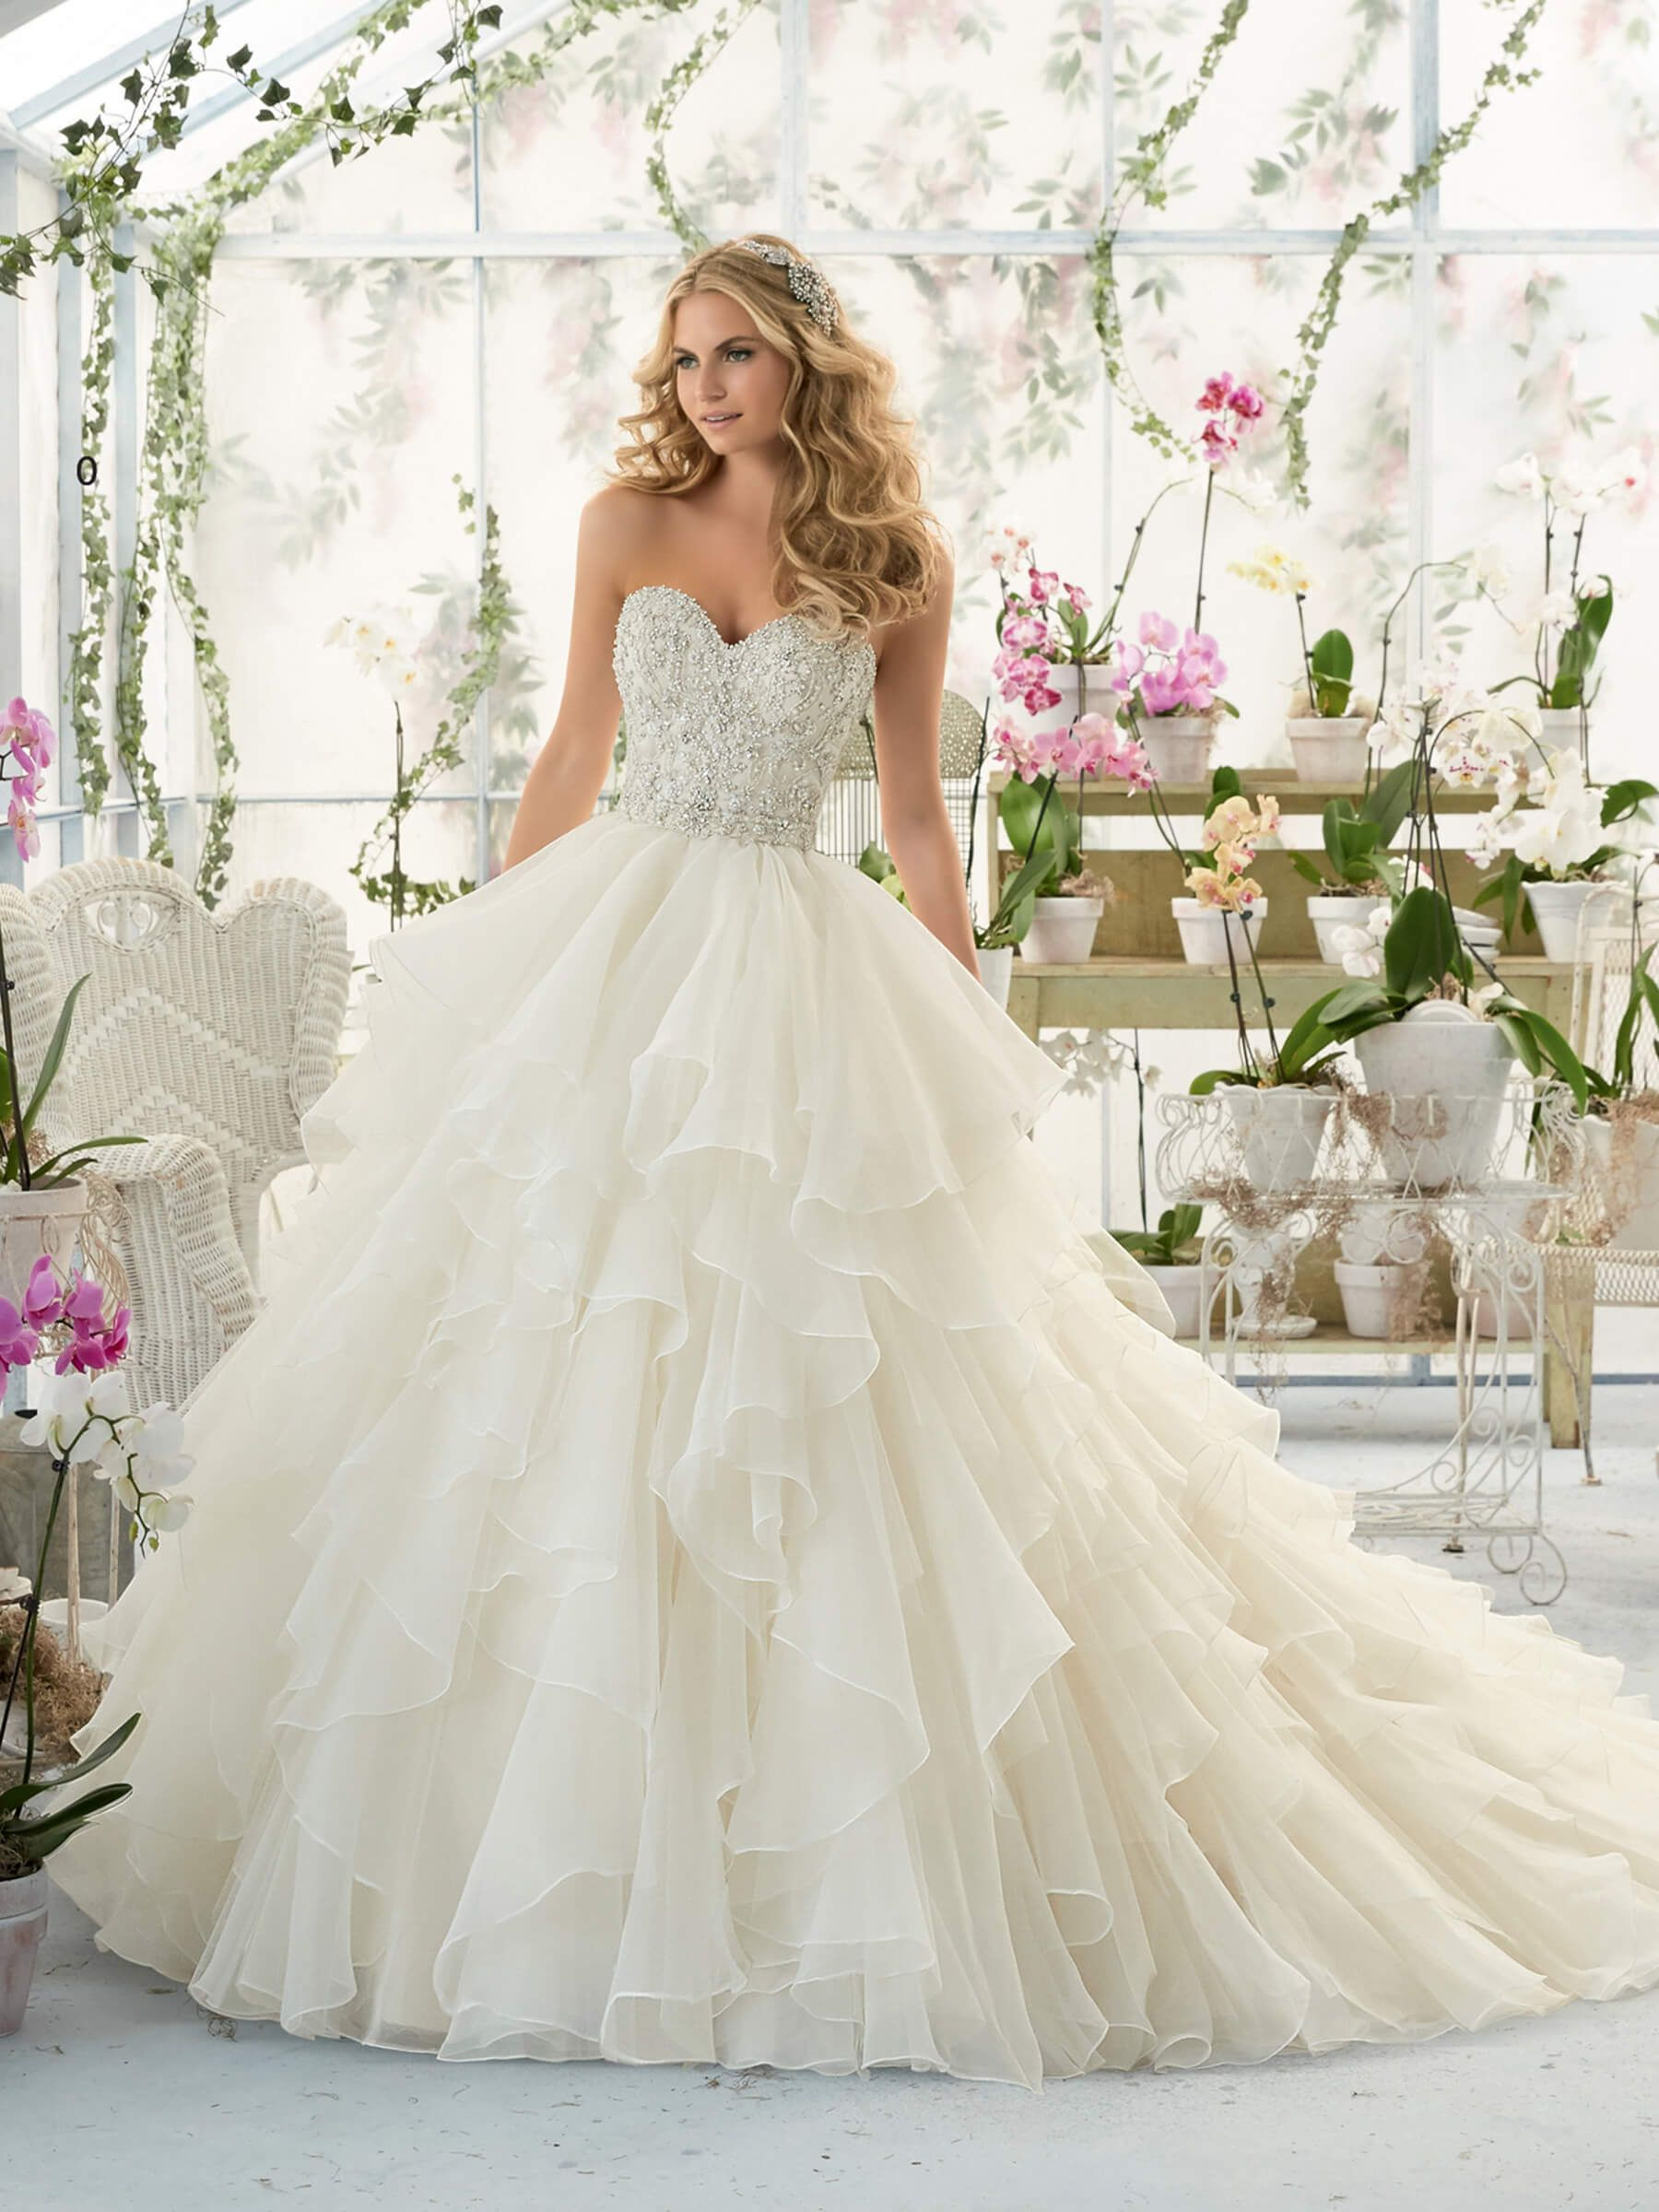 Mori lee wedding dresses discontinued styles  Méret  alakítható ra re  Wedding and stuff  Pinterest